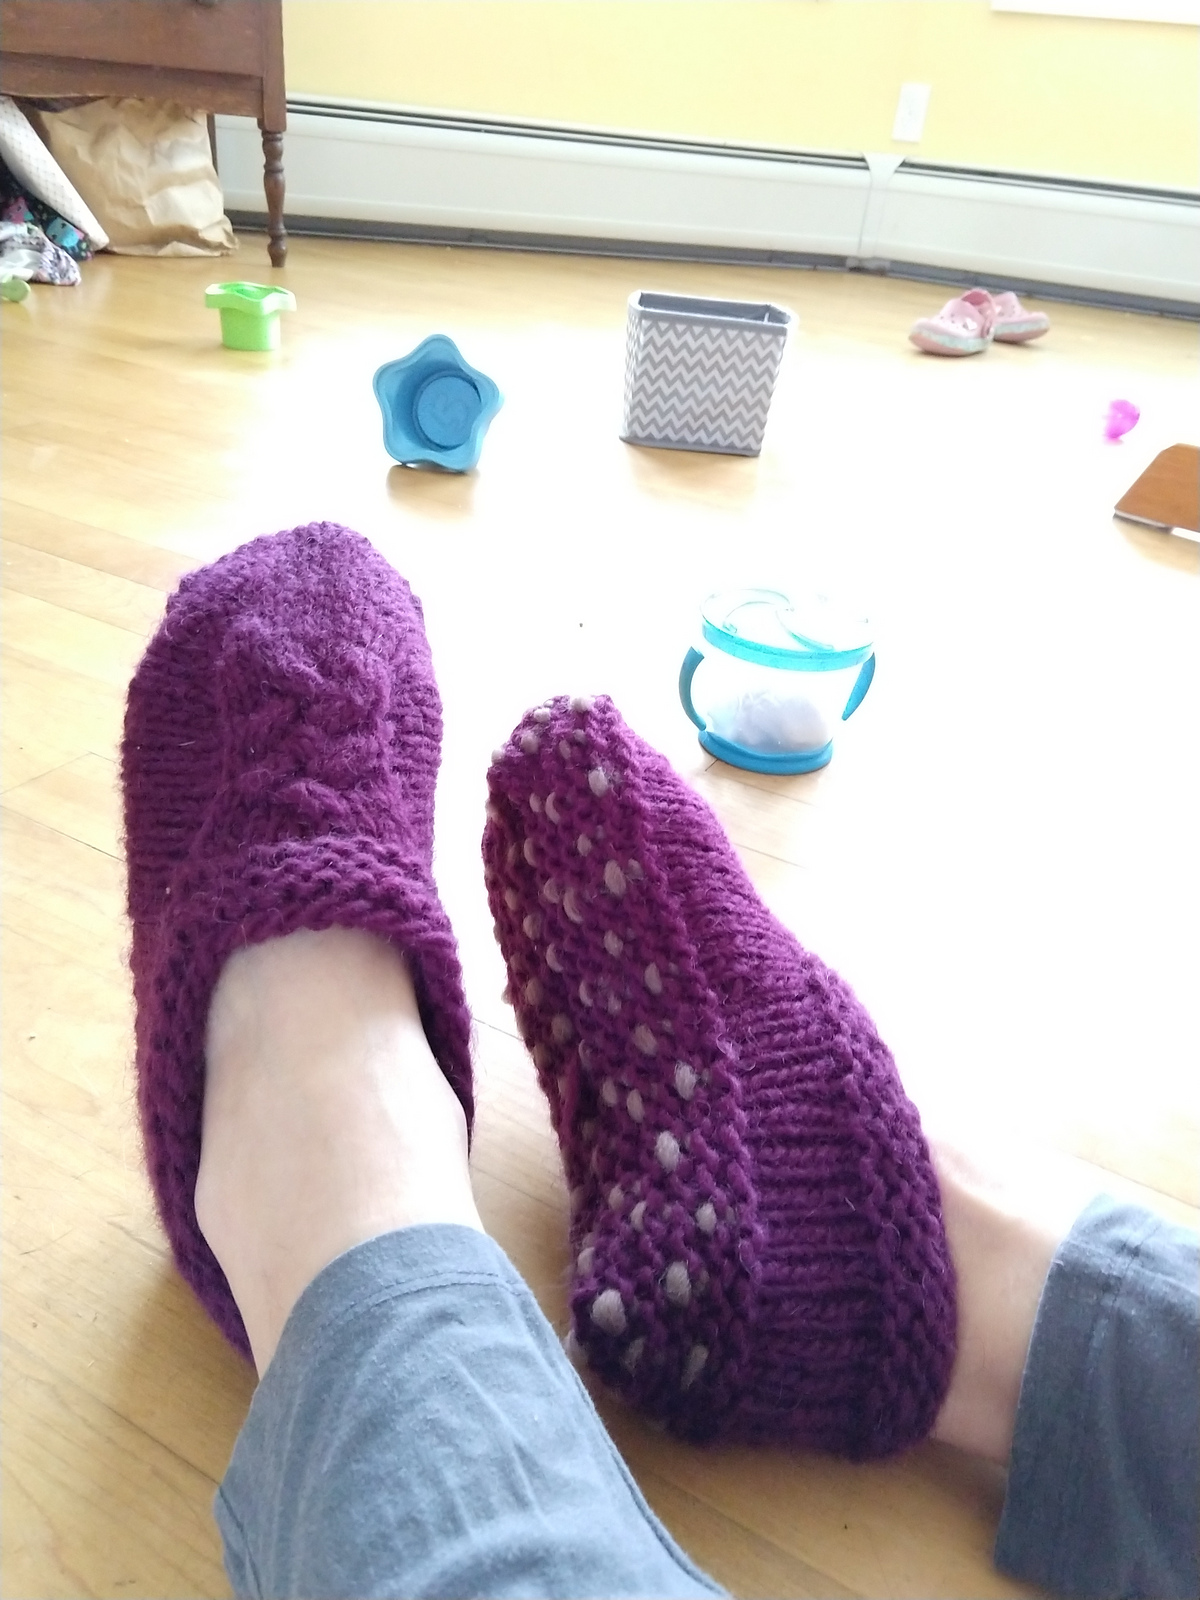 two feet in slippers one showing the sole